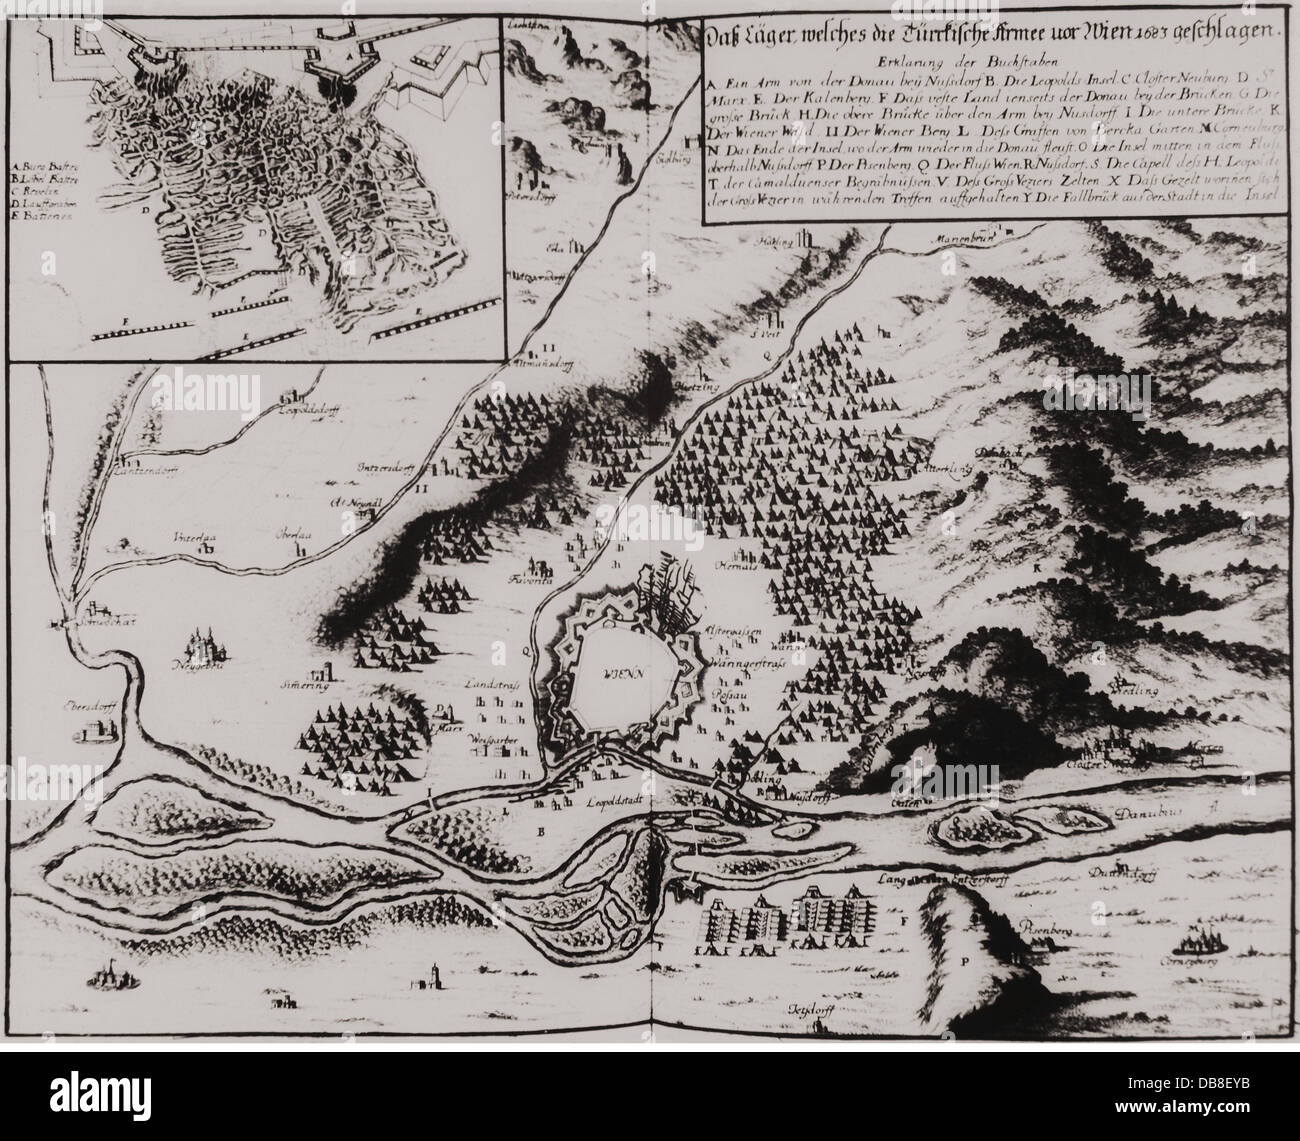 Great Turkish War 1683 - 1699, Siege of Vienna, 14.7 - 12.9.1683, map,  surroundings of the city and the Turkish trenches, contemporary copper  engraving, ...